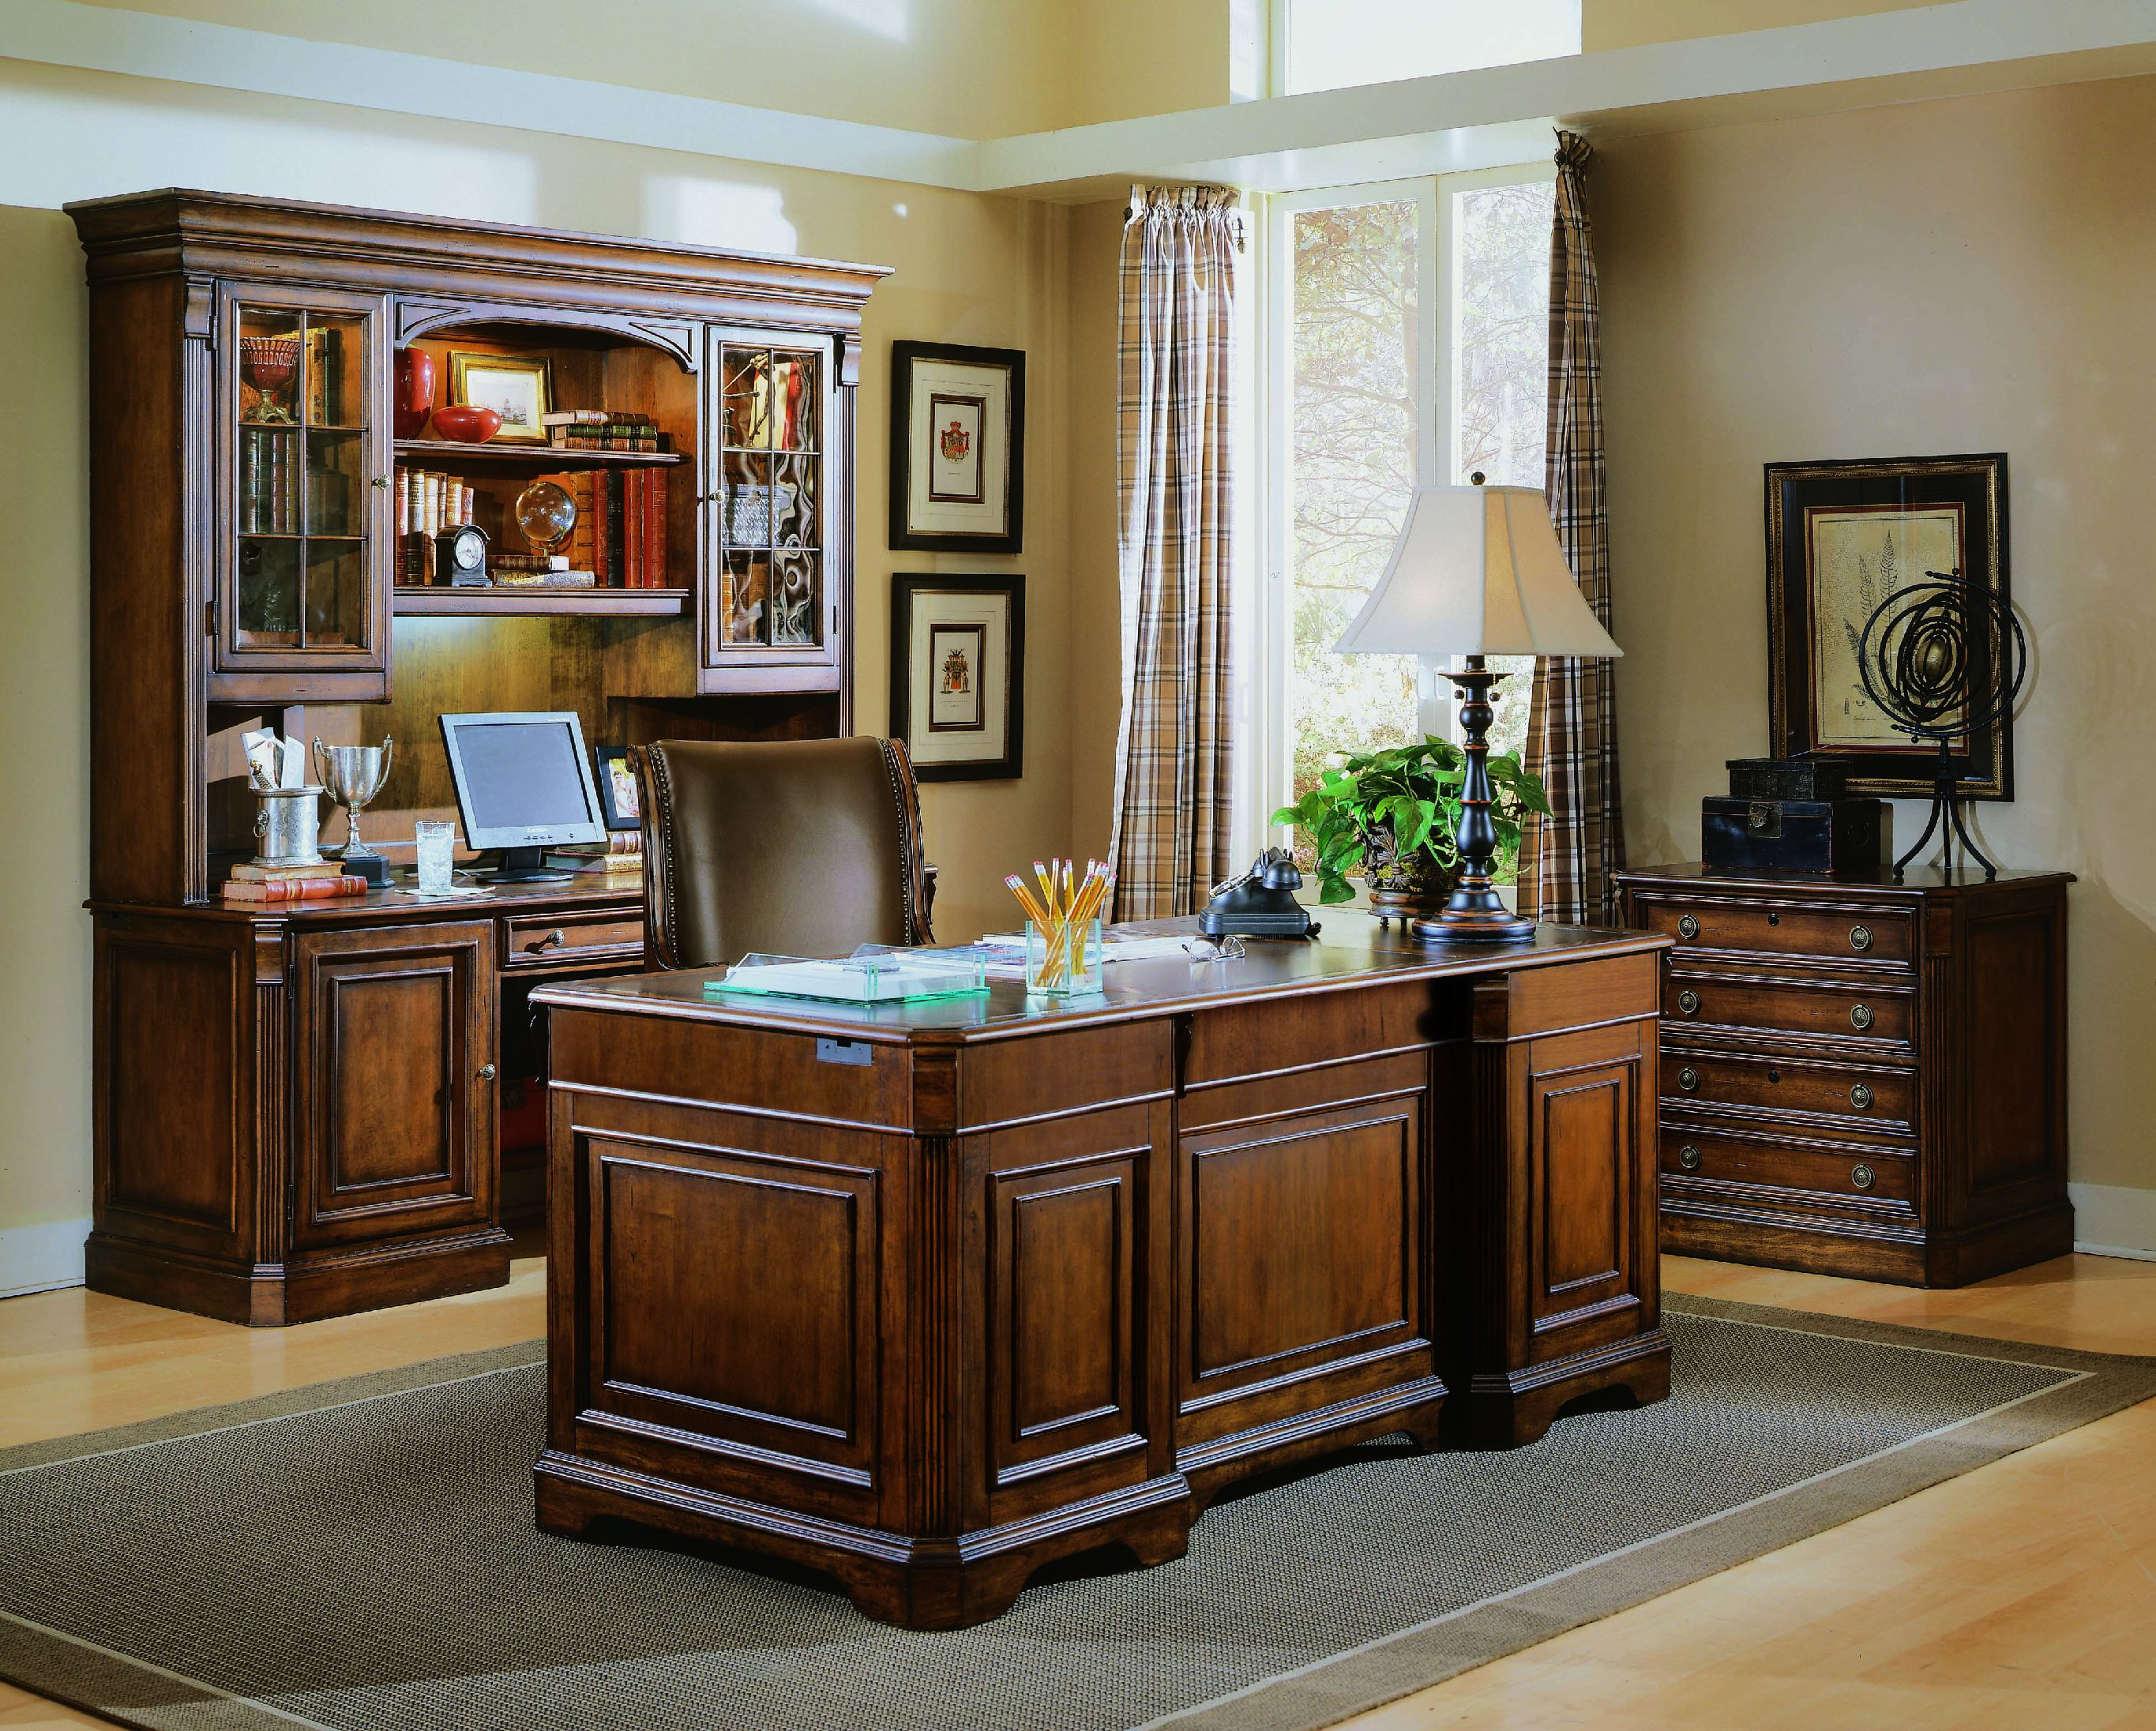 Best ideas about Hooker Office Furniture . Save or Pin Hooker Furniture Home fice Brookhaven Desk Chair 281 30 Now.